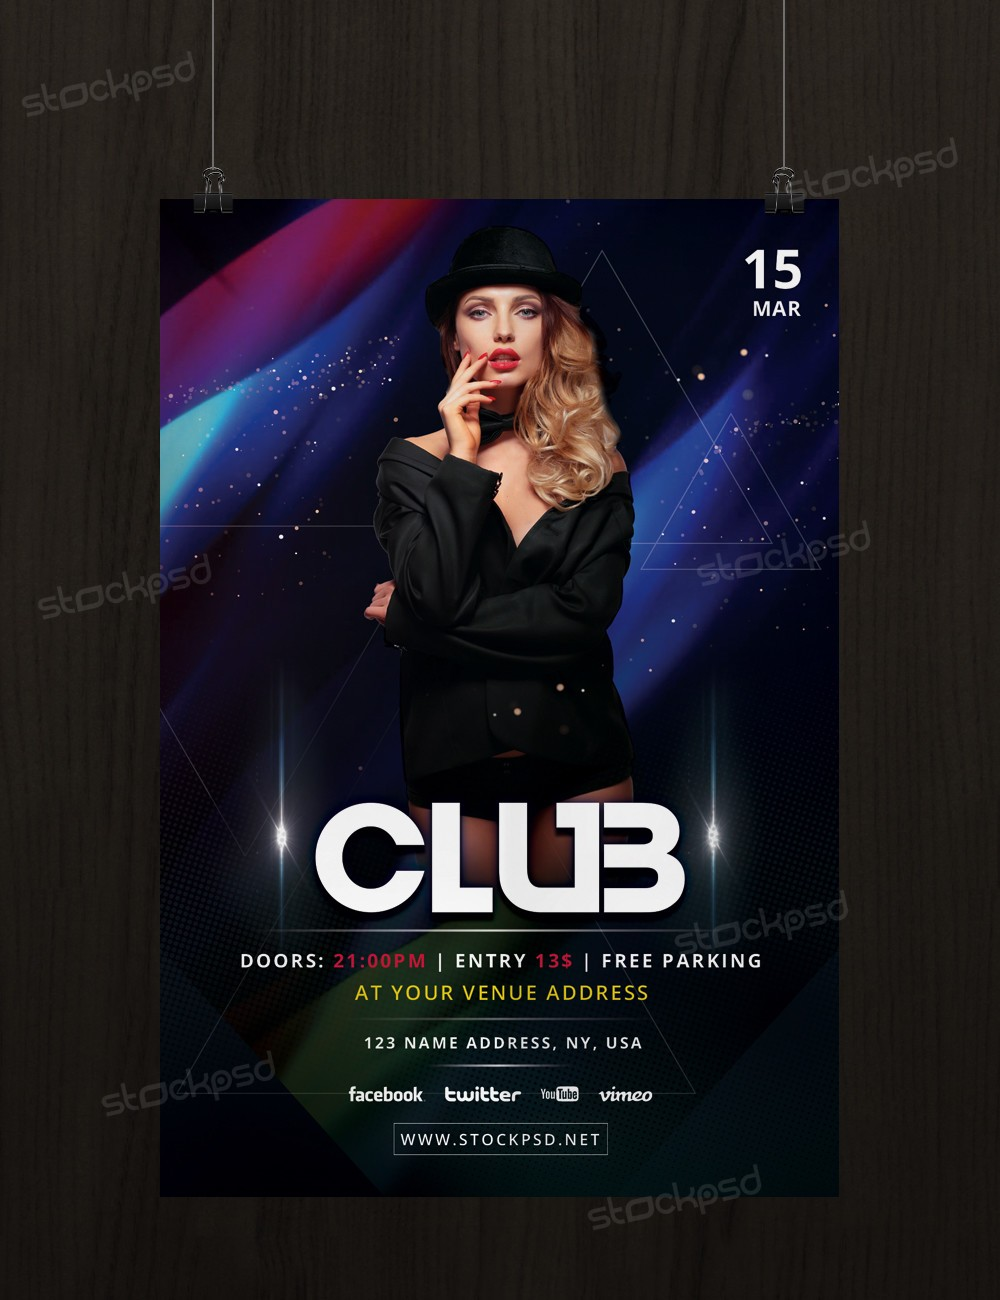 club event download freebie psd flyer template